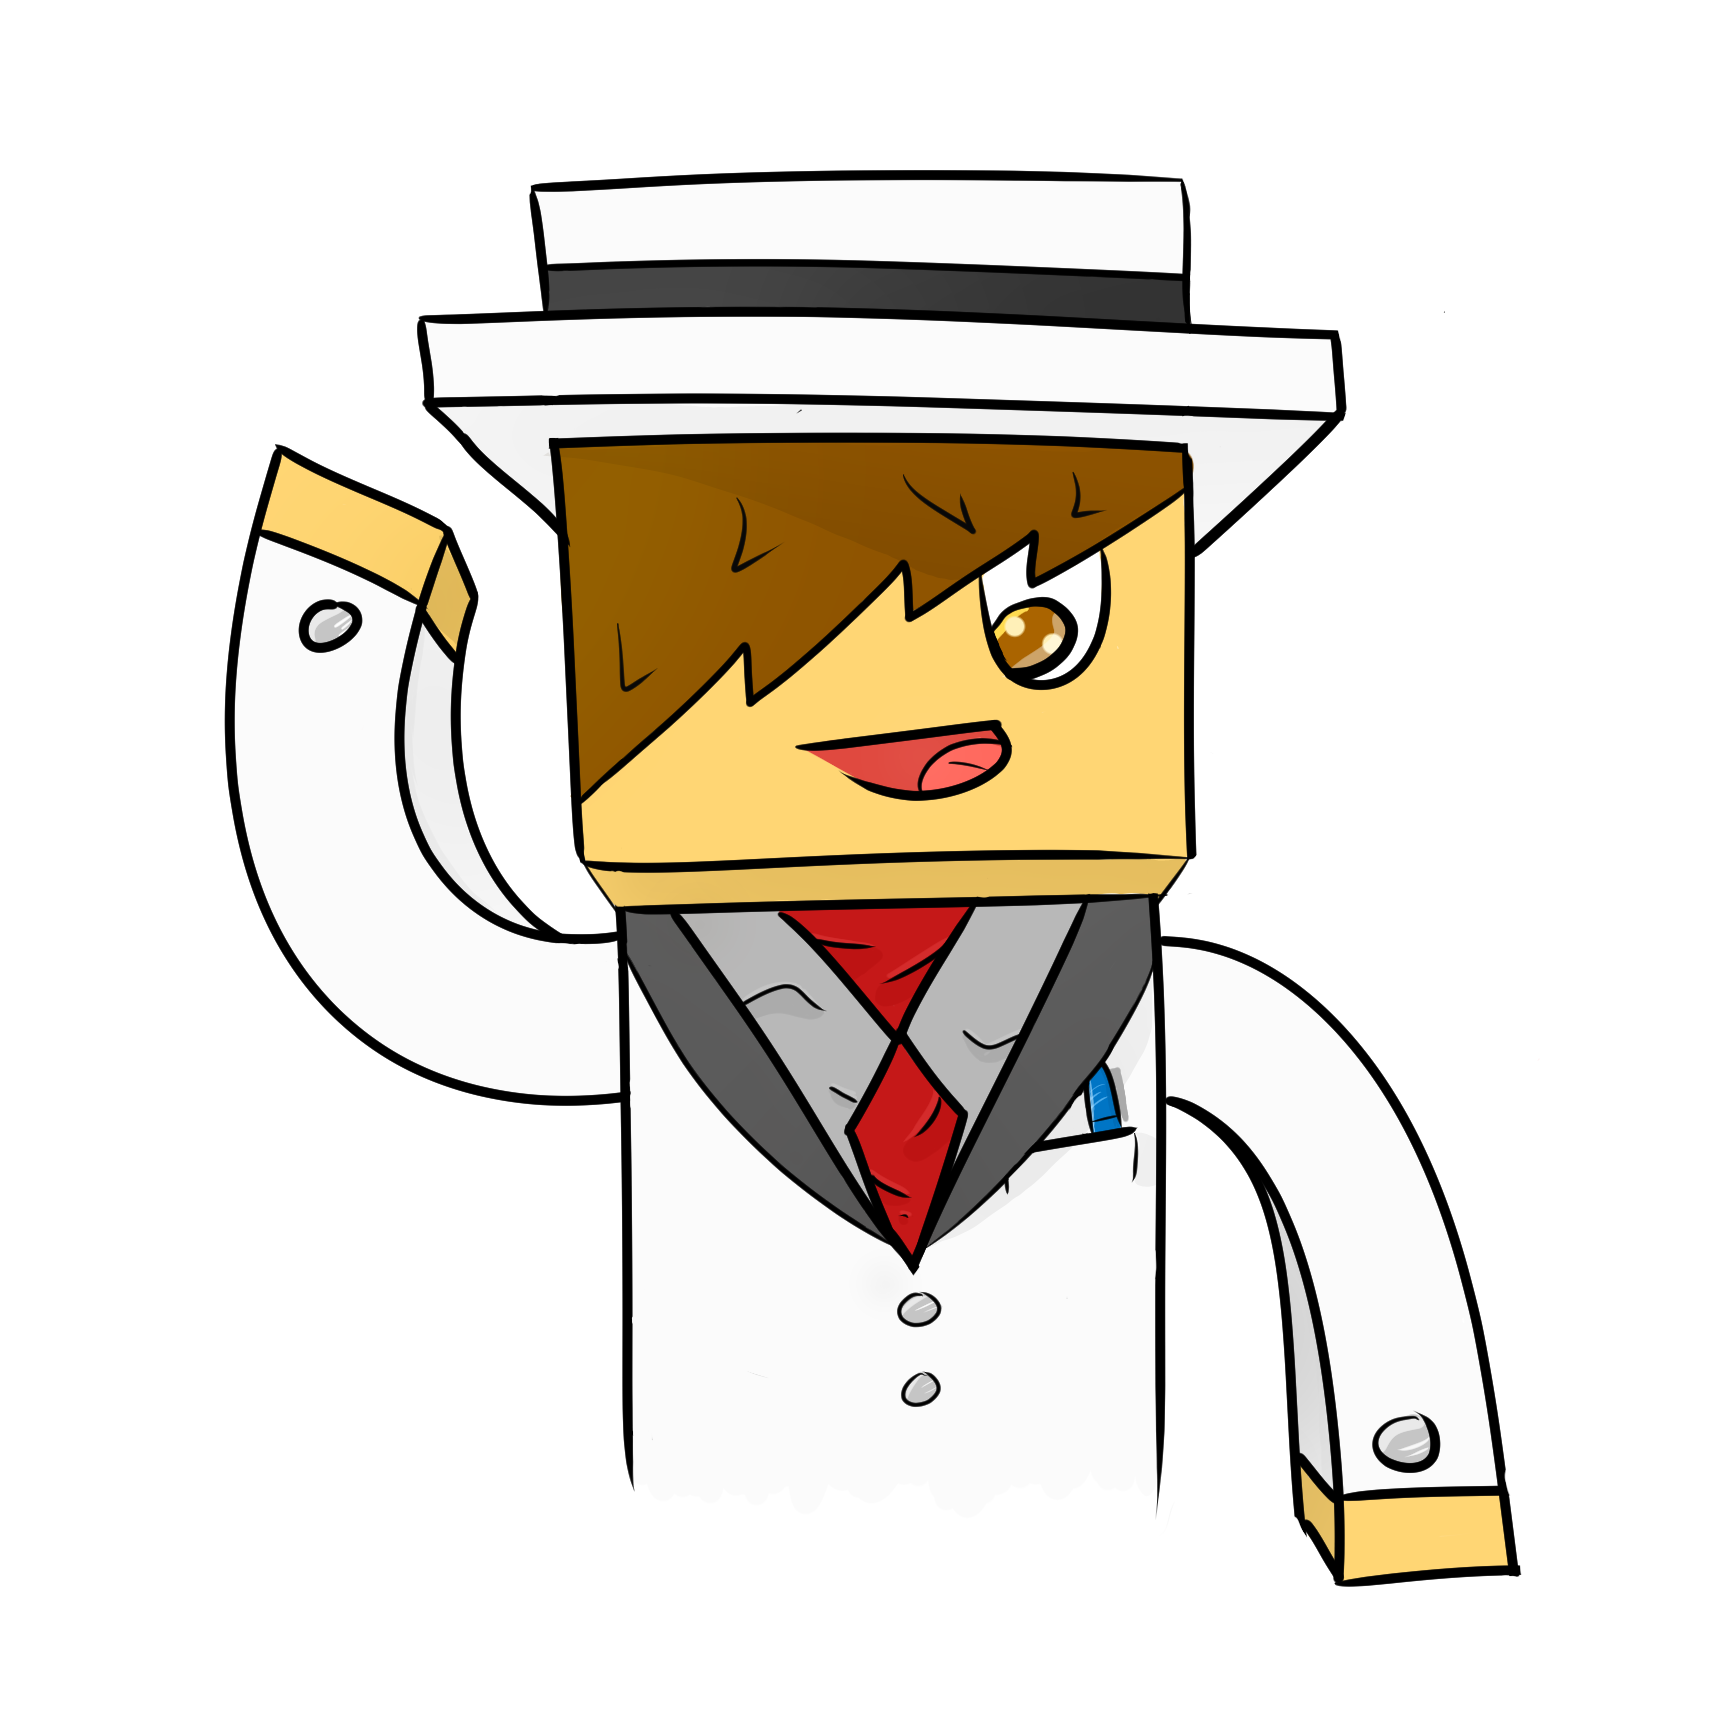 Minecraft Skin Drawing at GetDrawings com   Free for